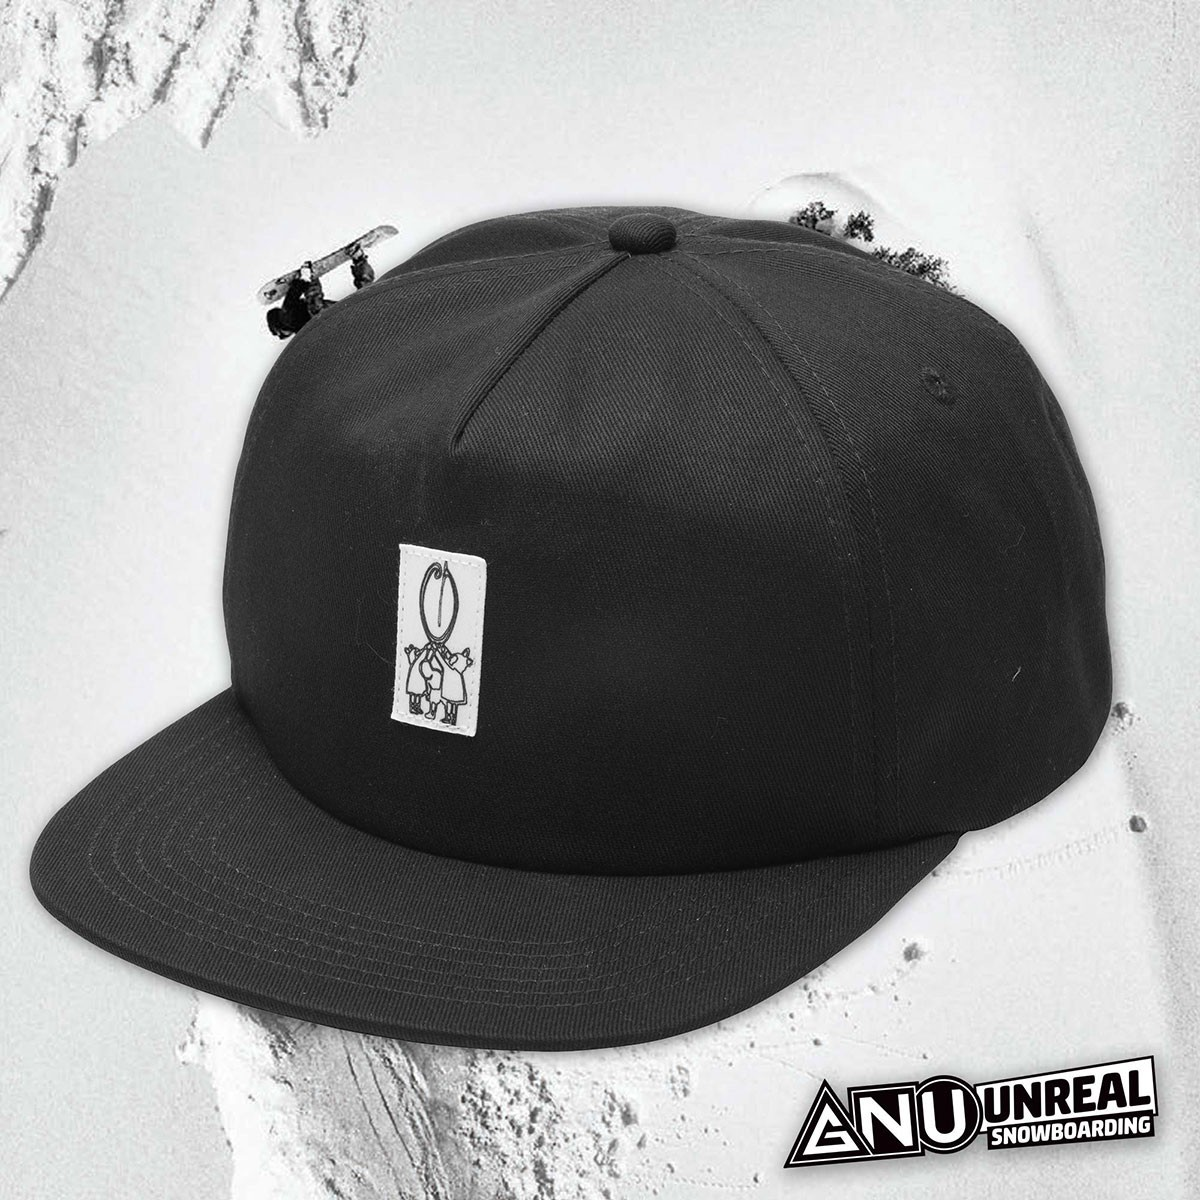 GNU UNREAL G SNAPBACK HAT BLACK - Изображение - AQUAMATRIX